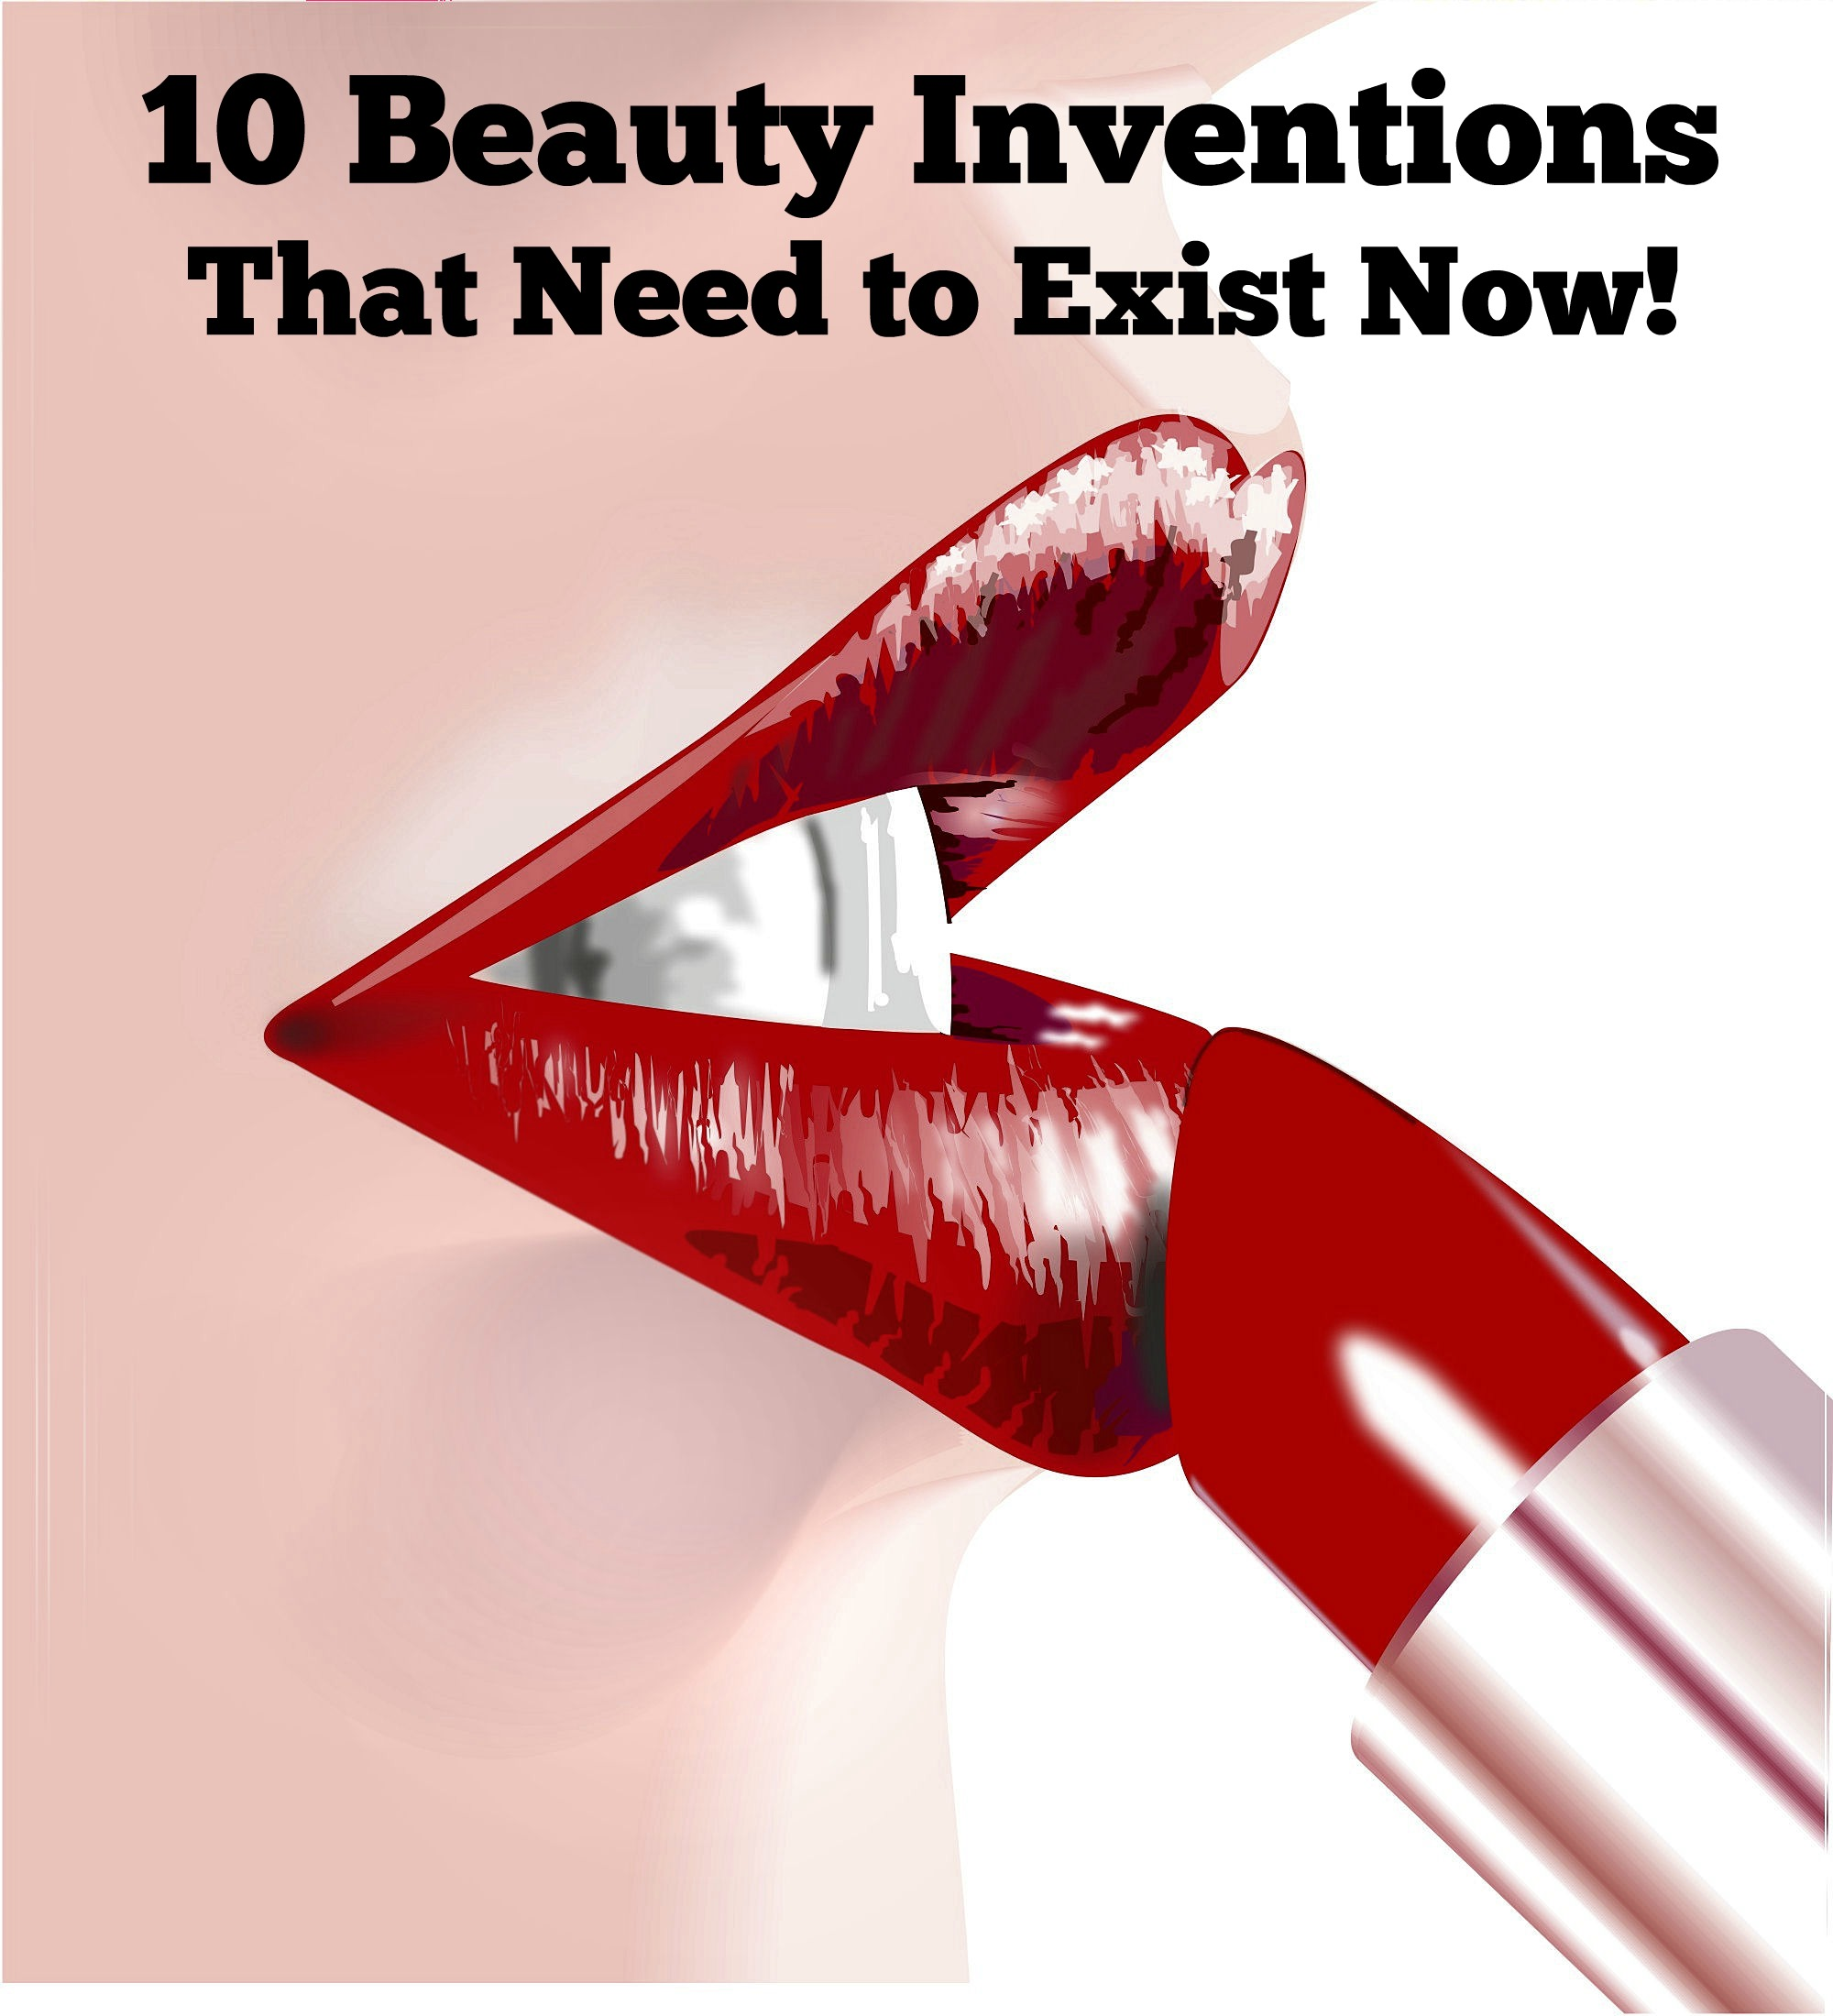 10 beauty inventions that need to exist now